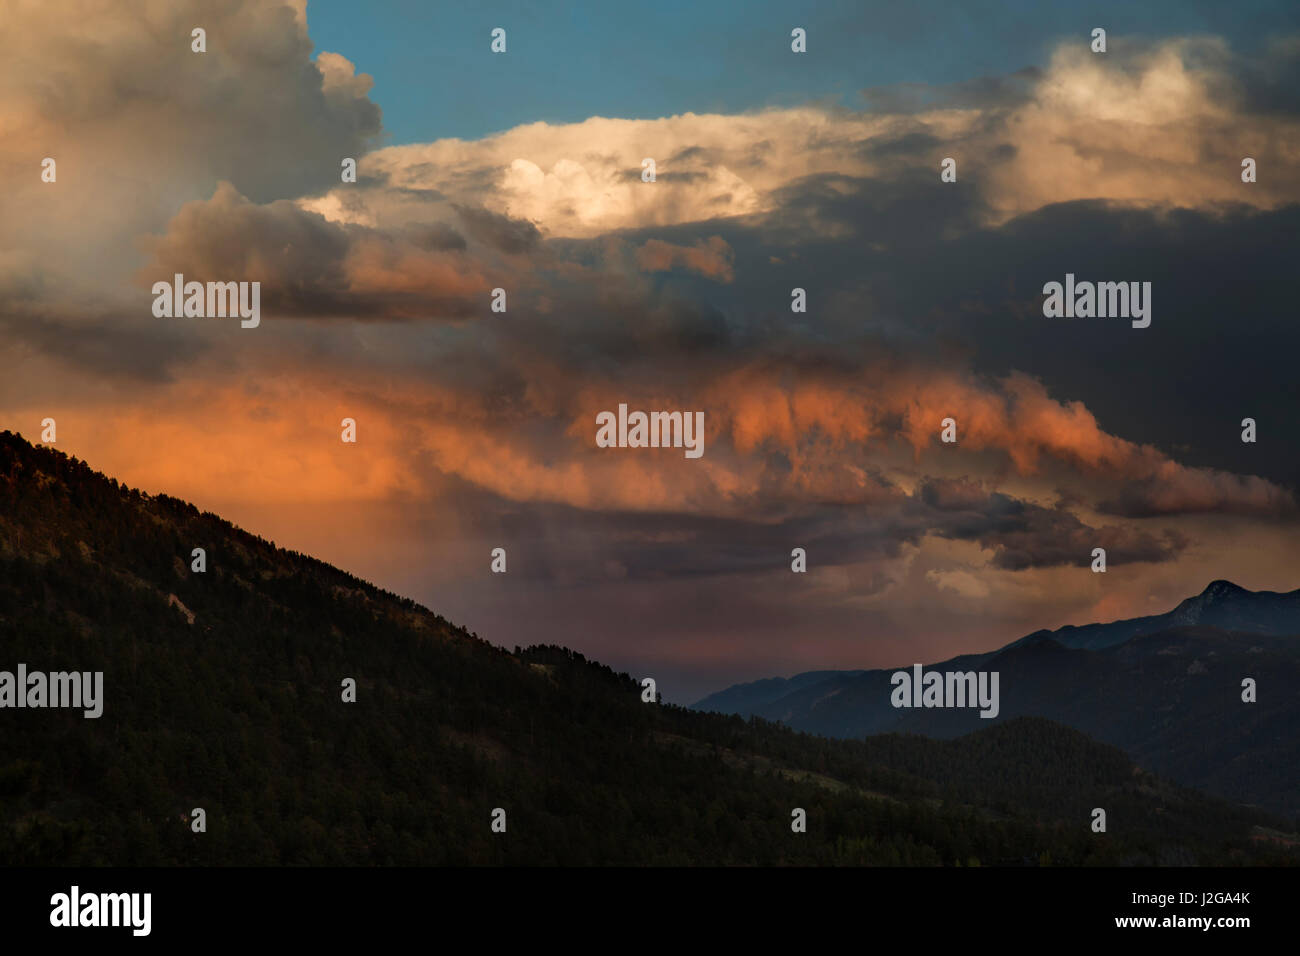 USA, Colorado. Fiery sunset above reflects in clouds. Credit as: Don Grall / Jaynes Gallery / DanitaDelimont.com - Stock Image